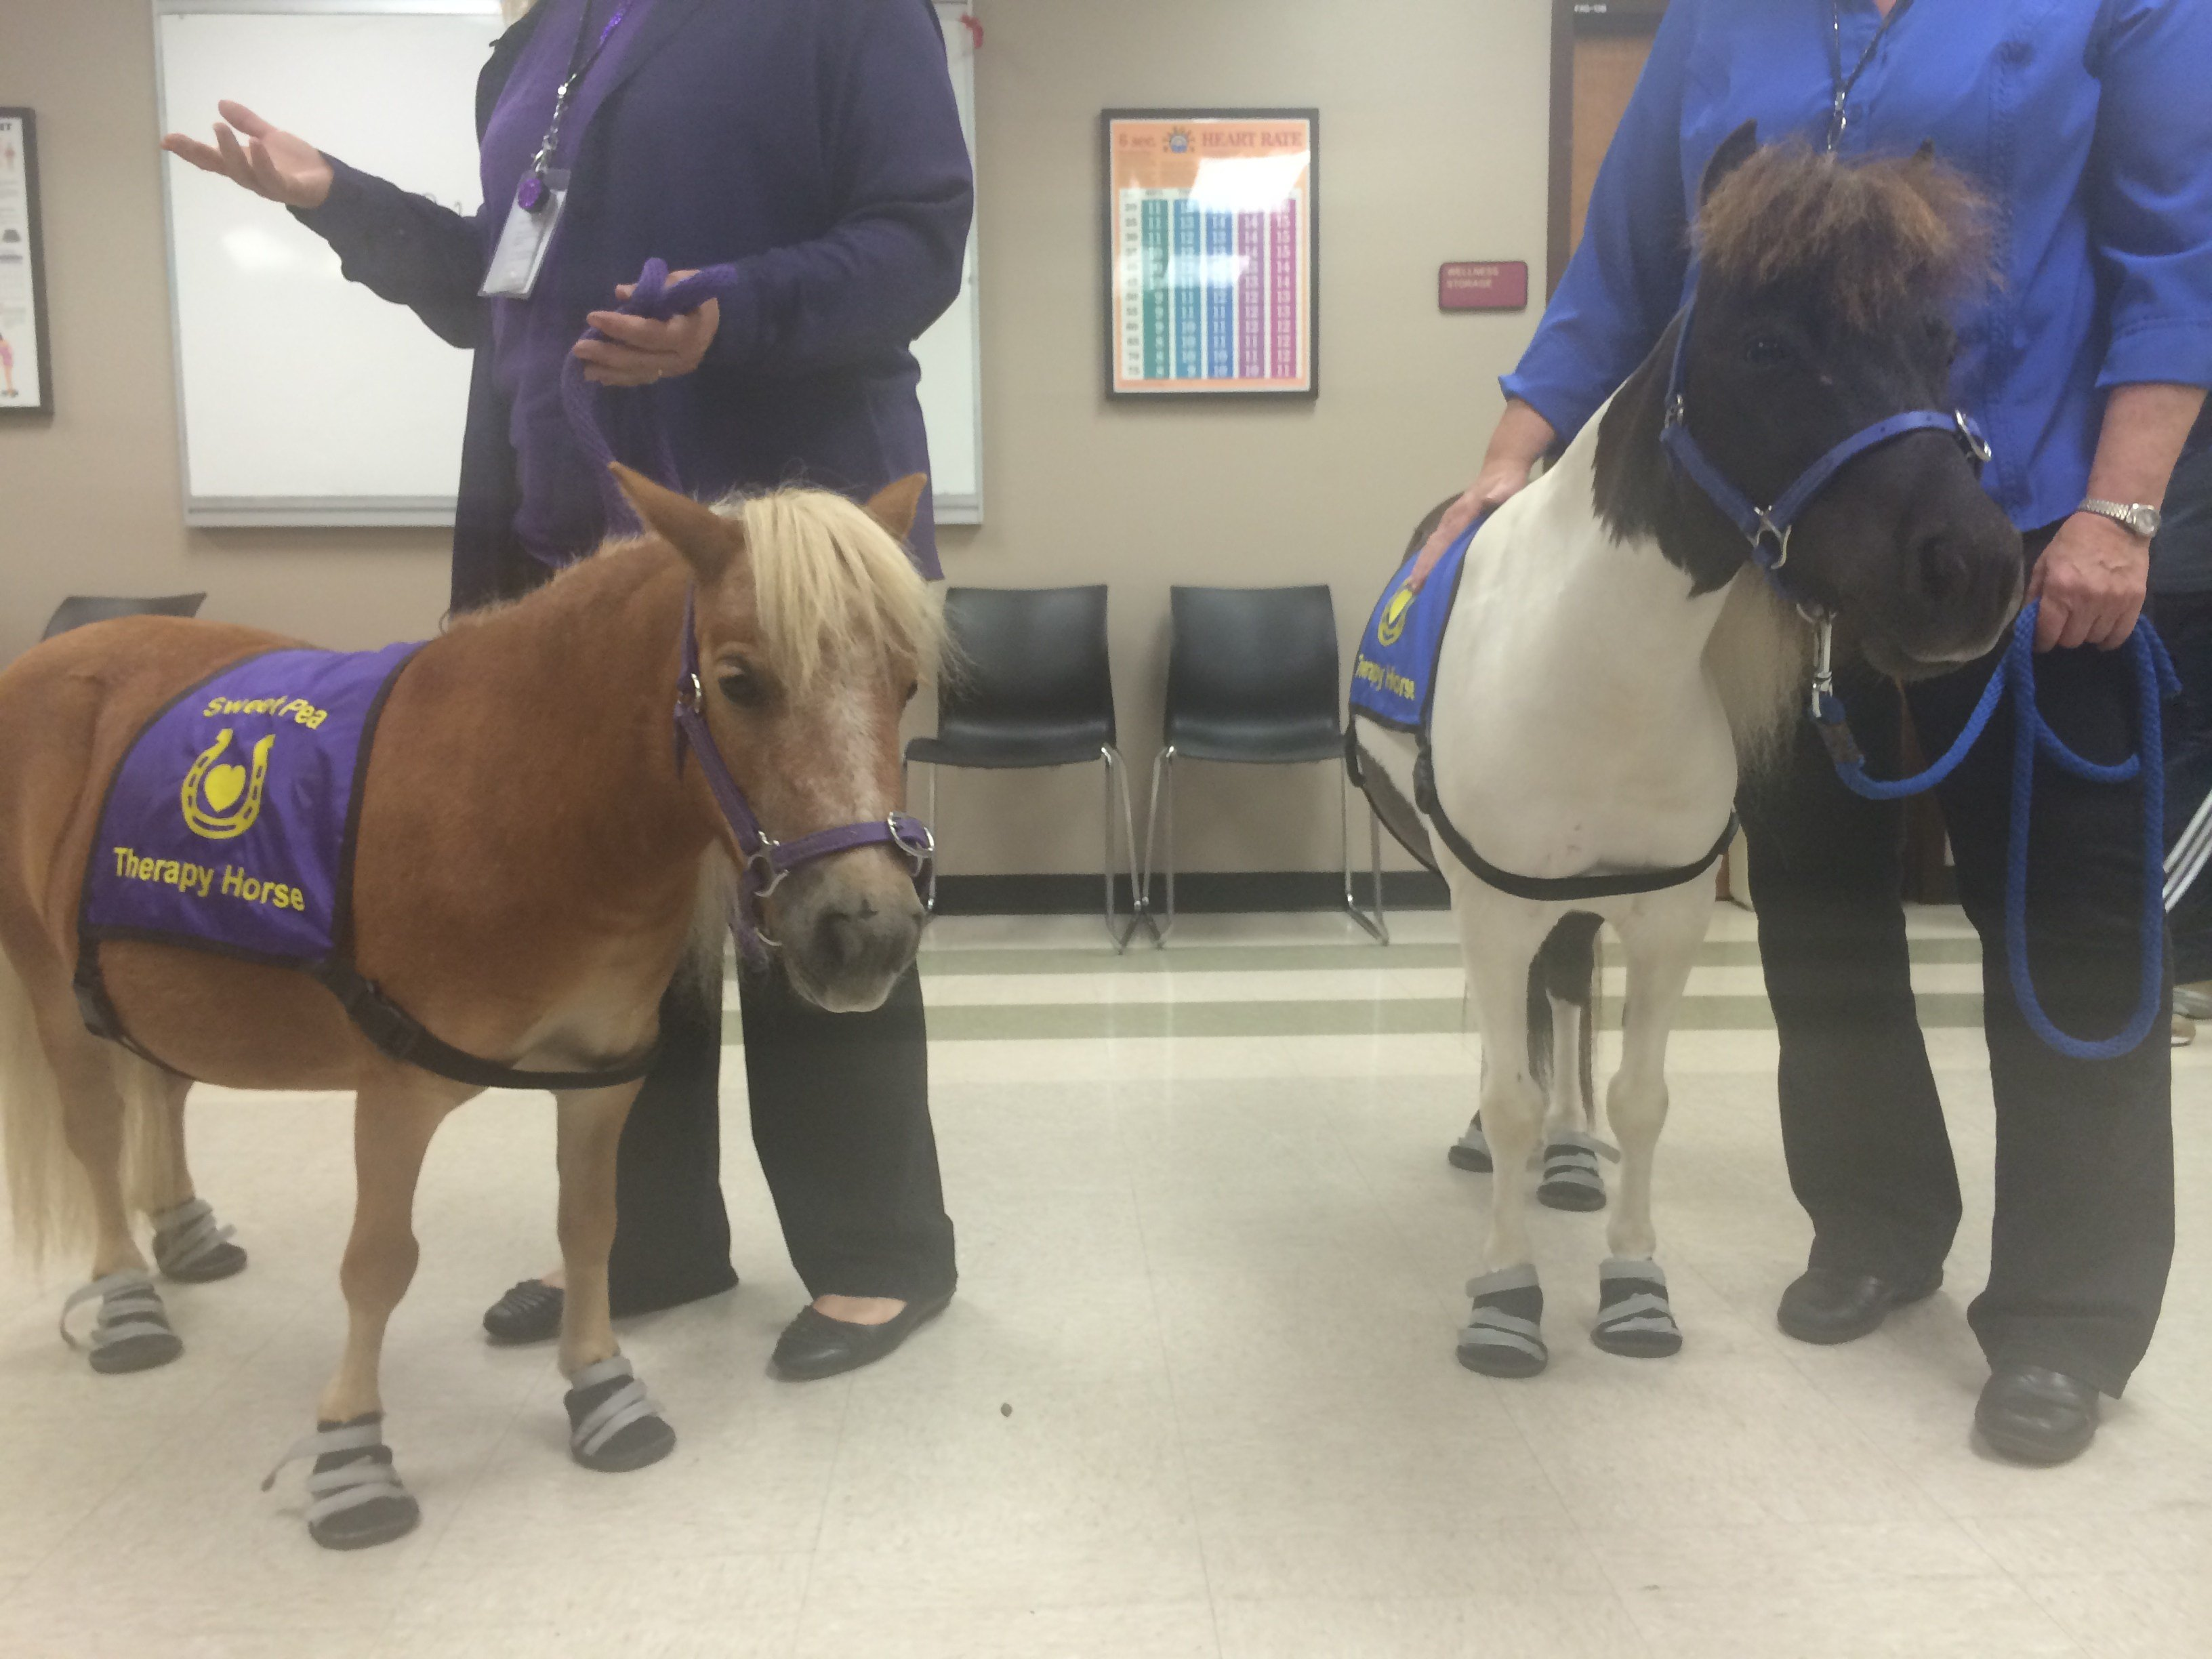 Sweet Pea and Pippin therapy horses